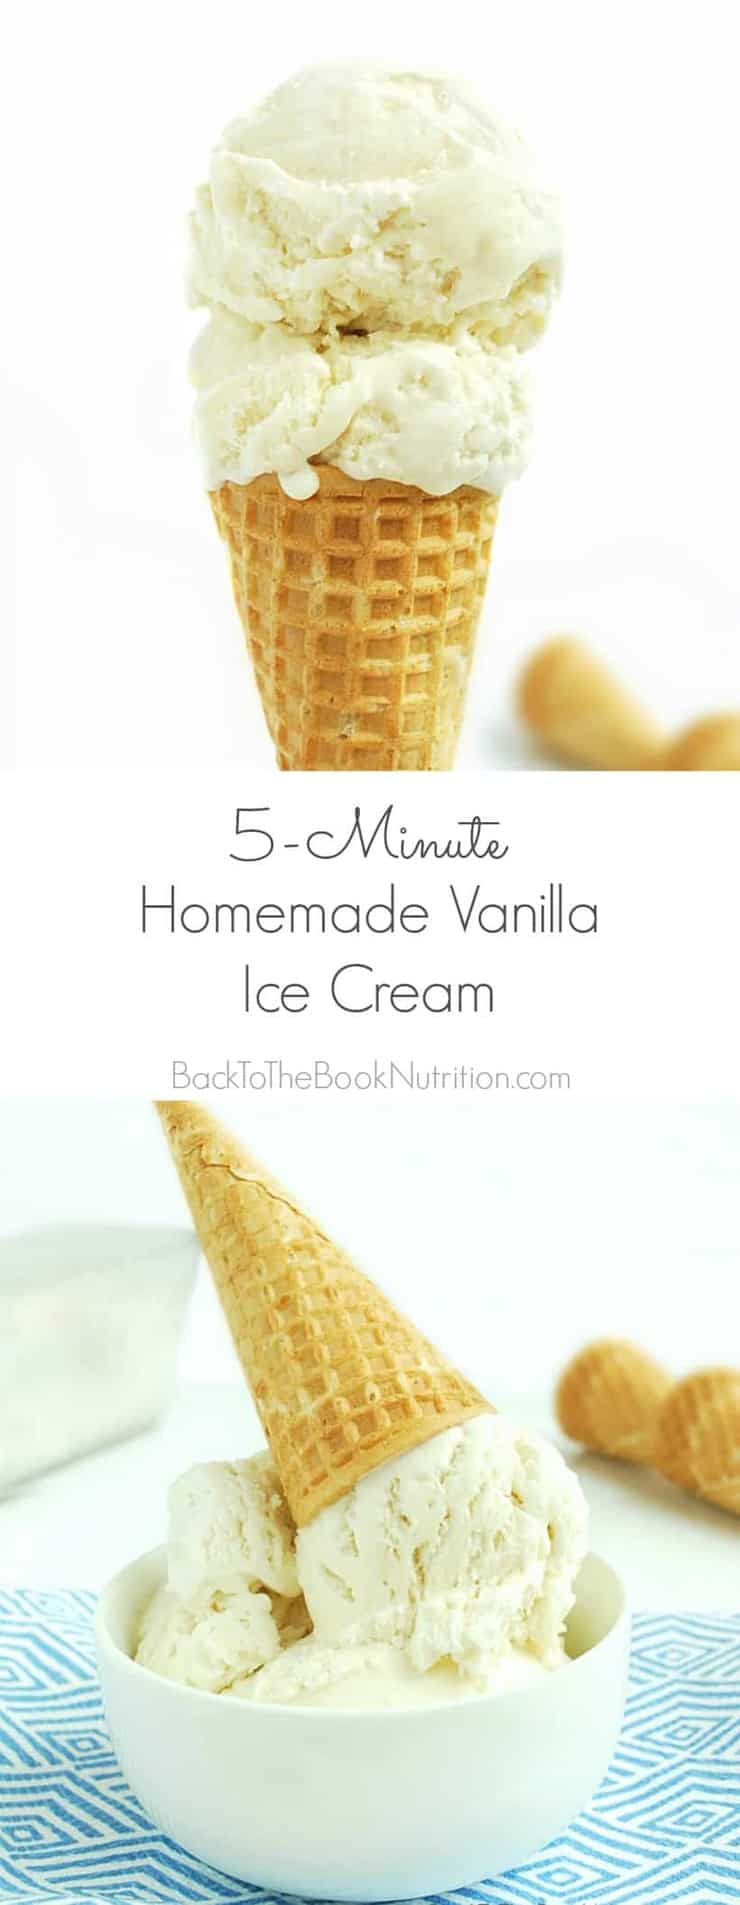 5 Minute Homemade Vanilla Ice Cream with only four ingredients! You'll be shocked by how good this stuff is with so little effort! | Back To The Book Nutrition